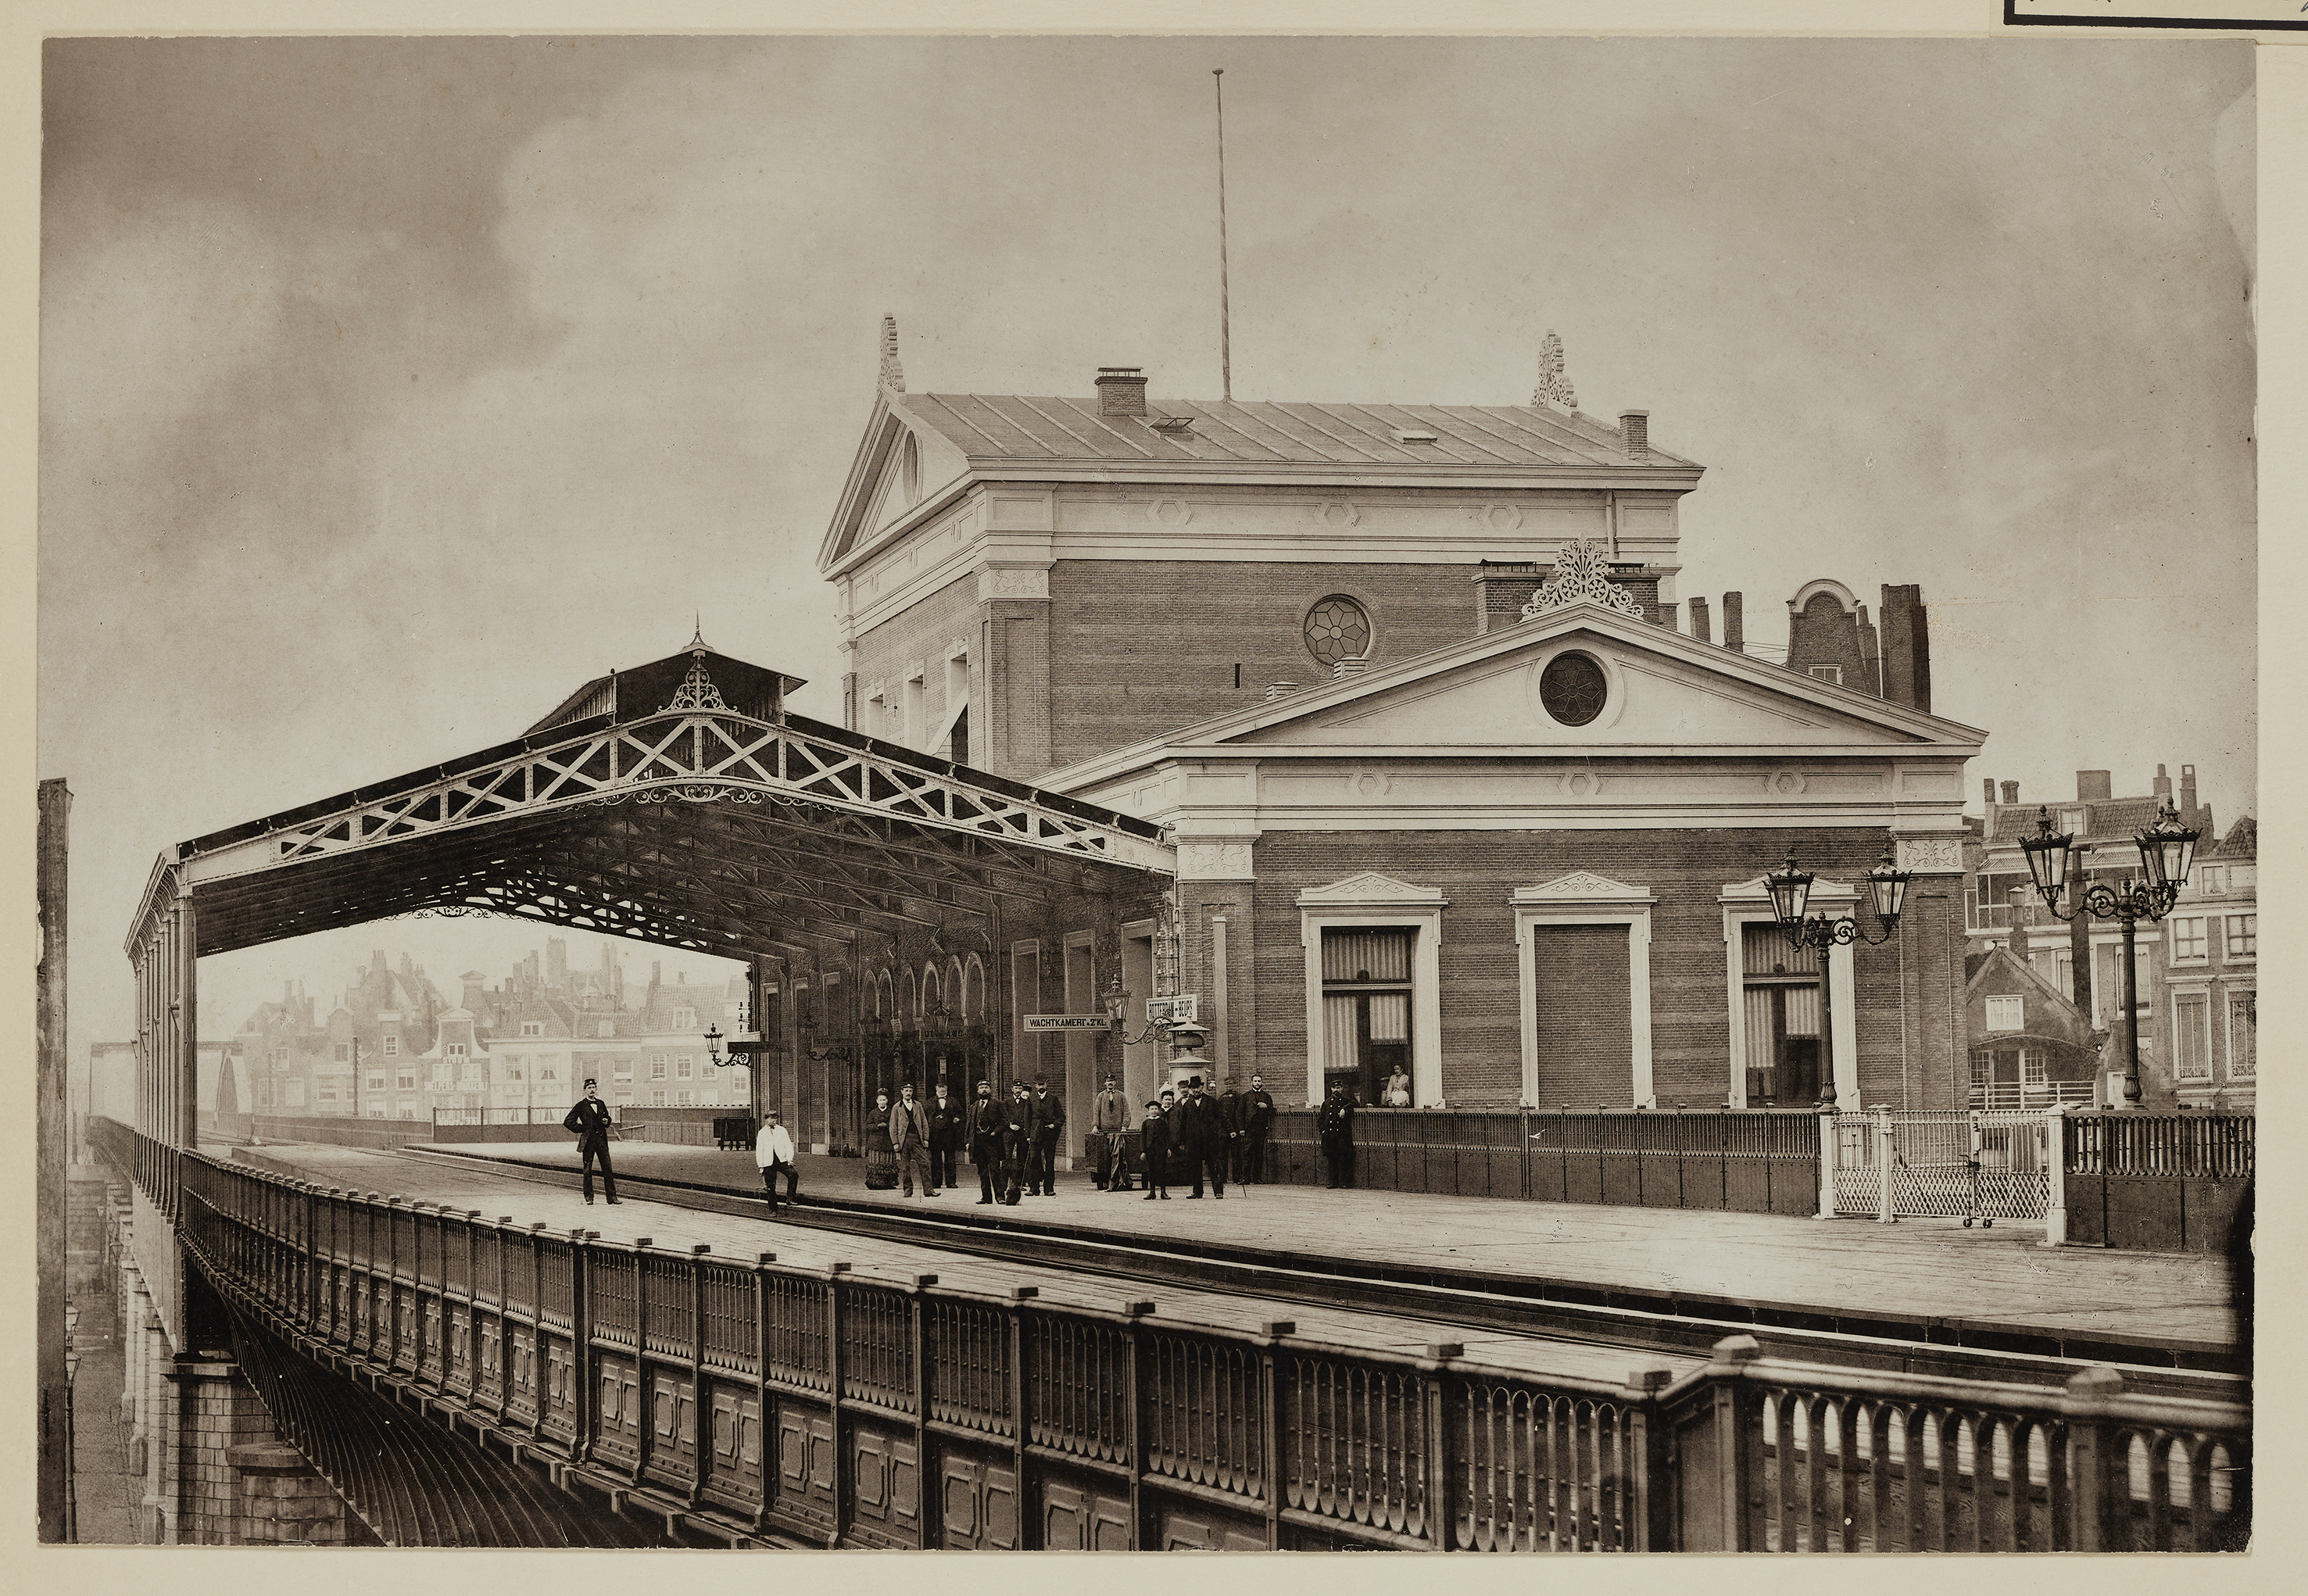 Station Rotterdam Beurs in 1877